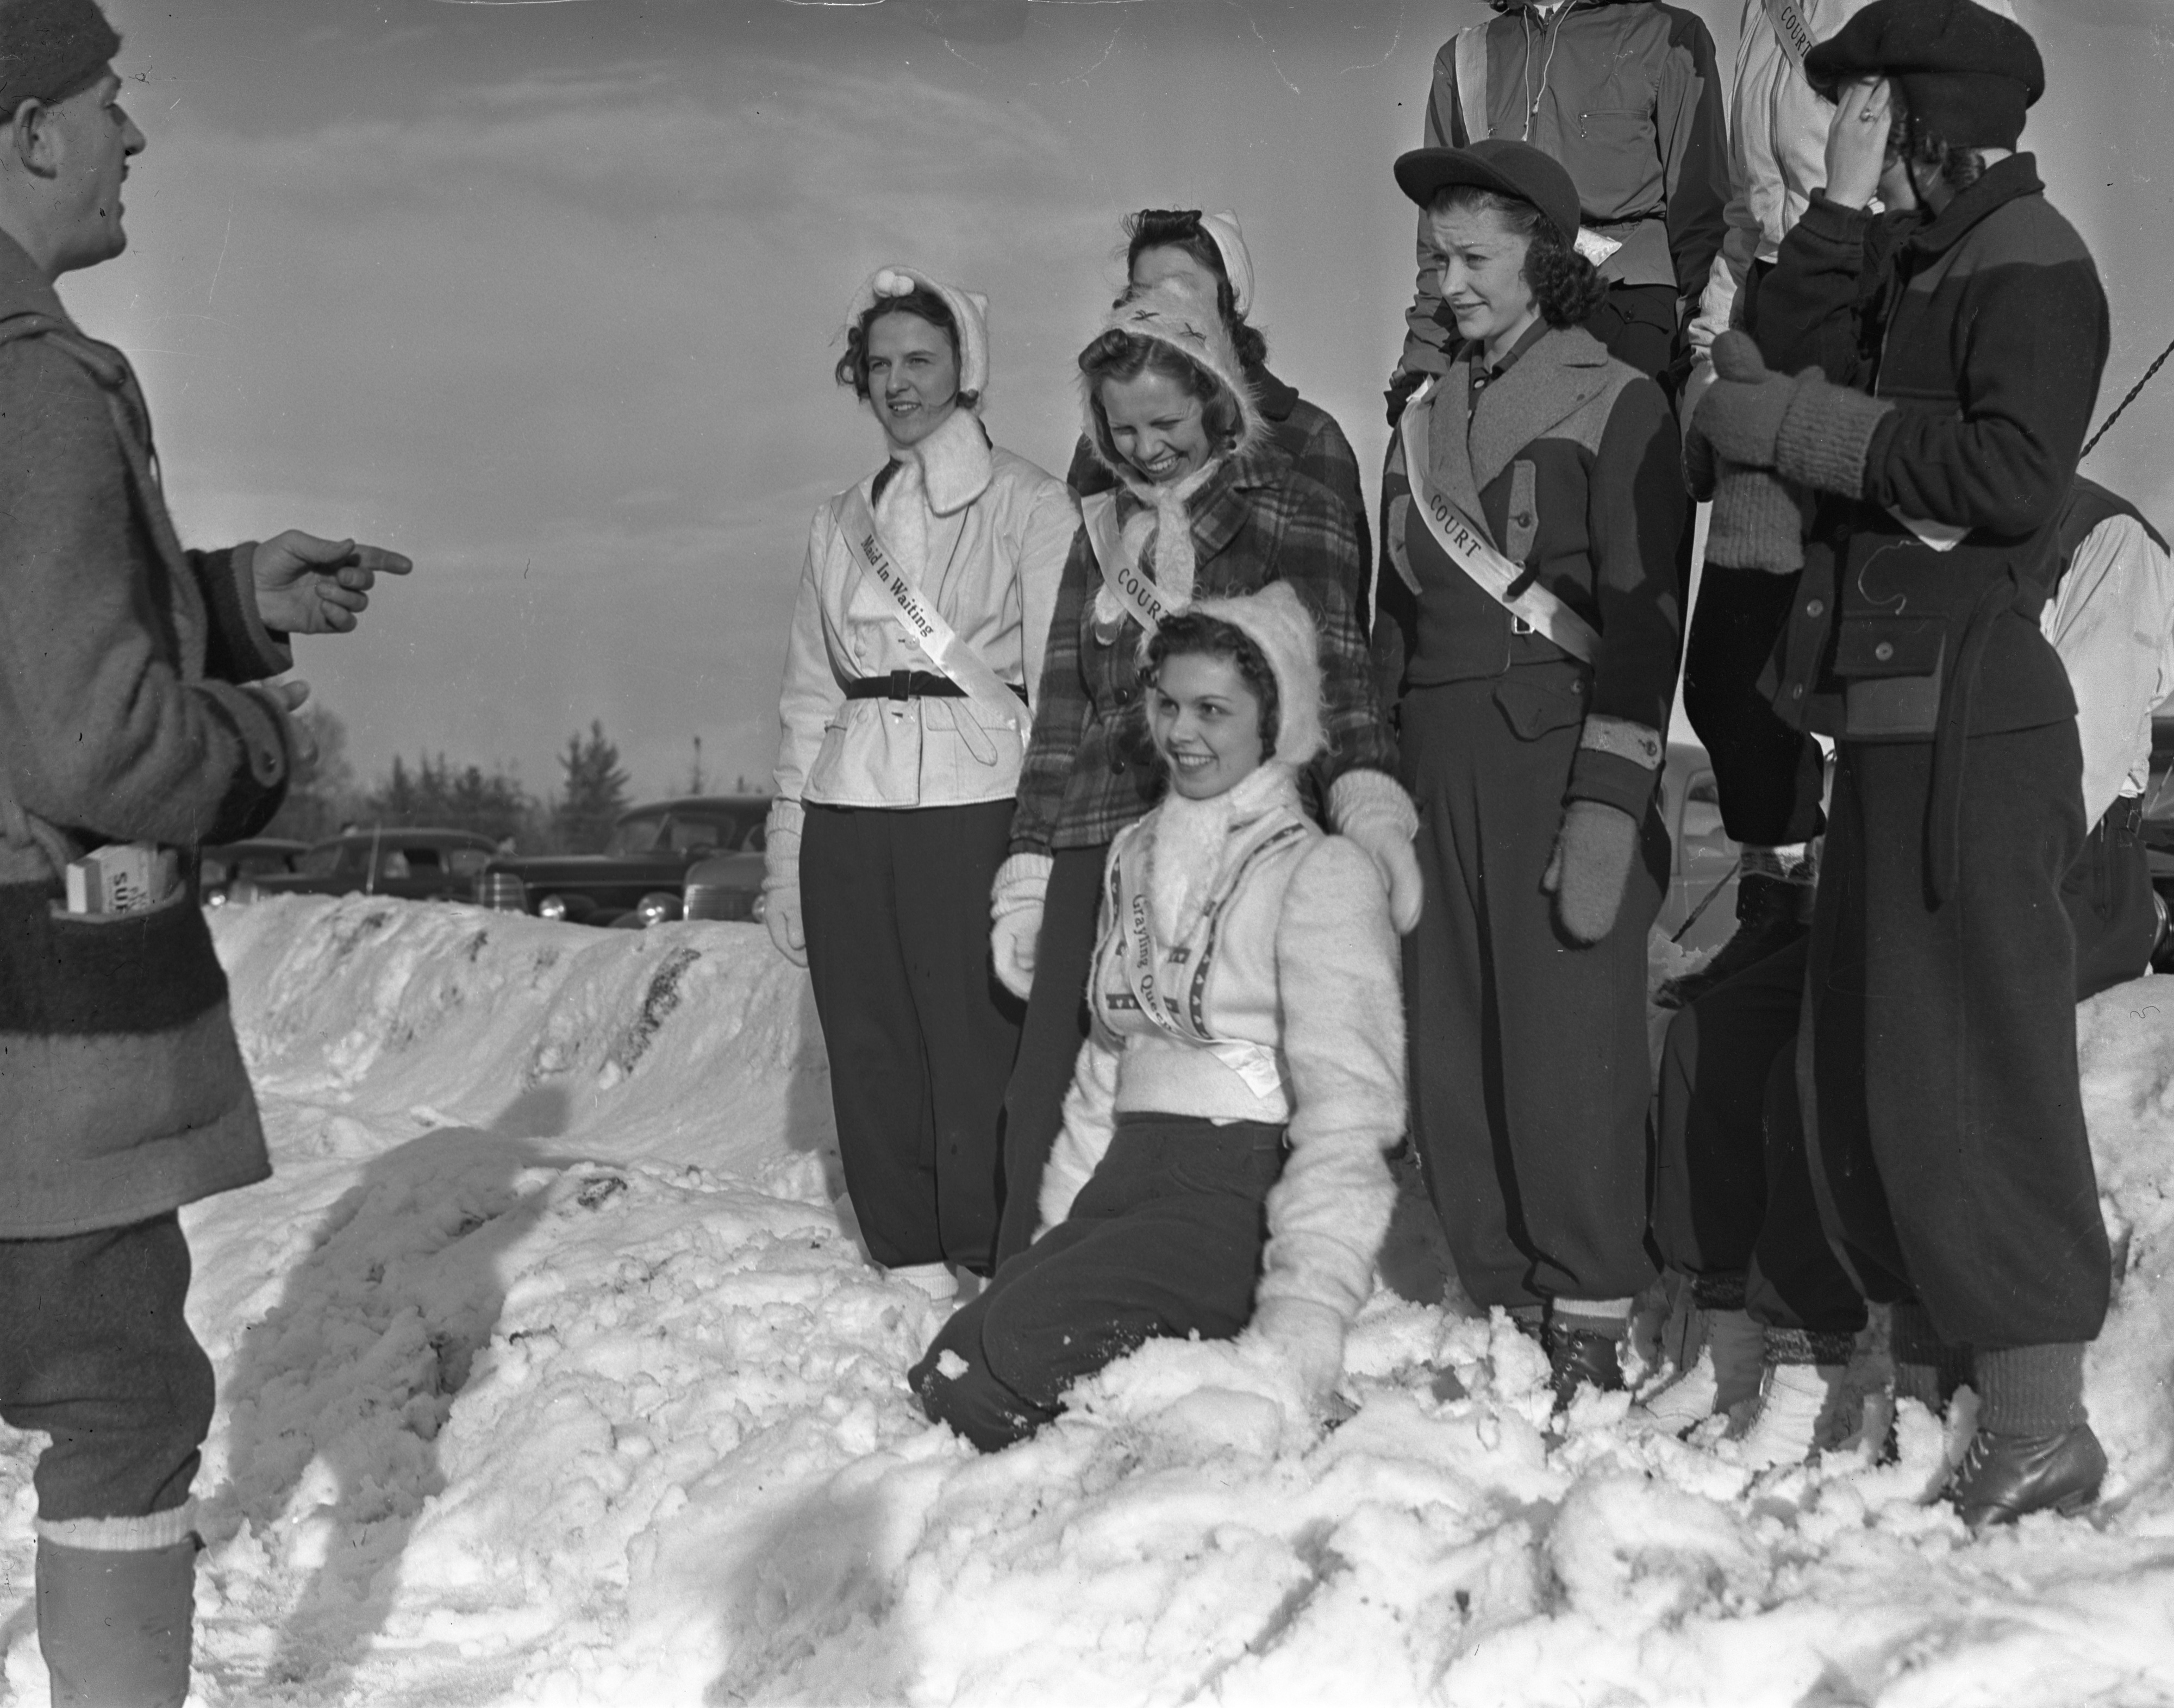 Grayling Snow Queen Pauline Merrill And Her Court Are Arranged For A Picture, January 1940 image